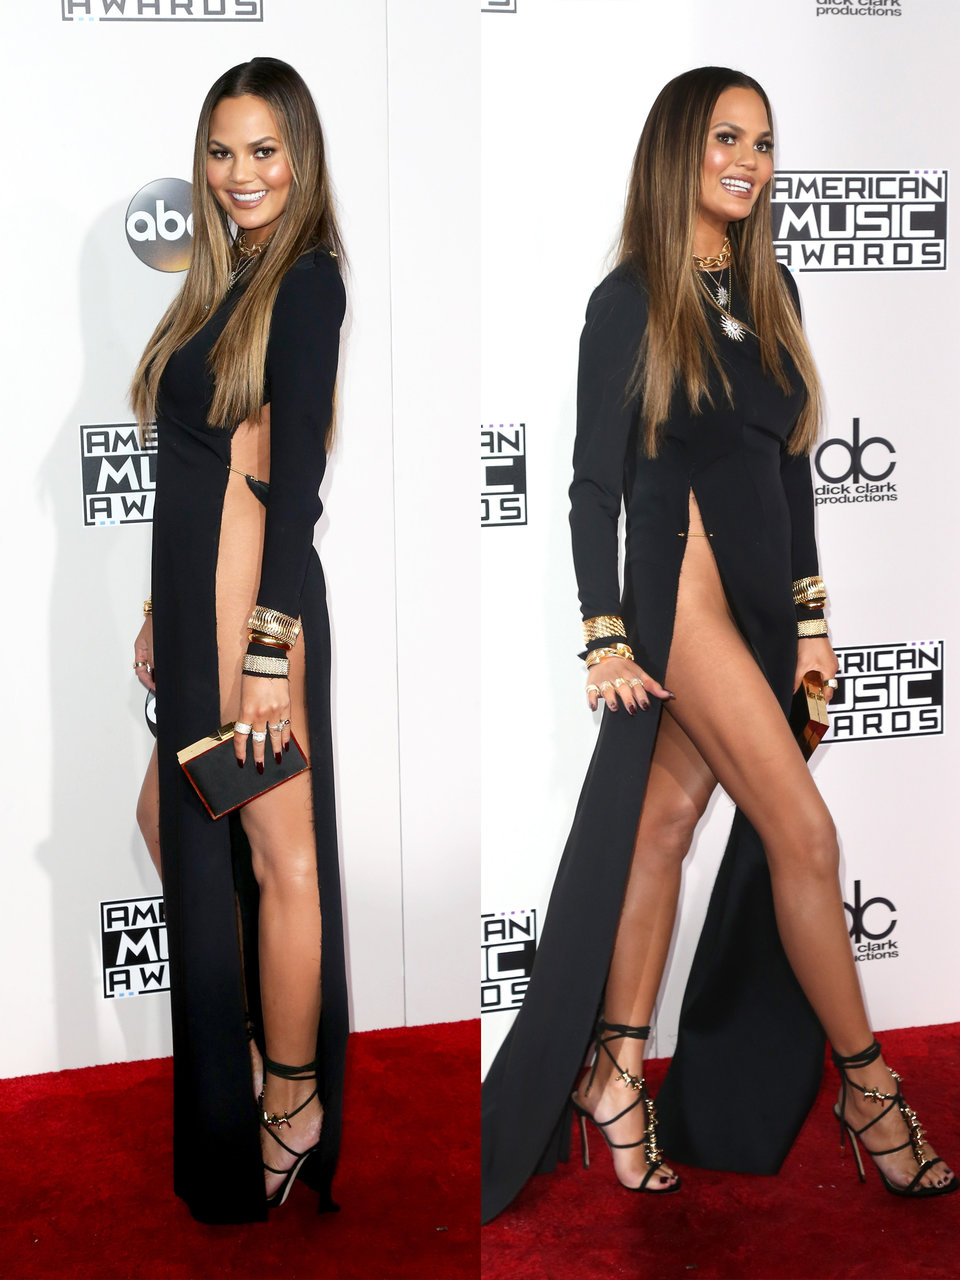 fast forward to the 2016 american music awards and chrissy teigen made waves with her dress held together with a safety pin